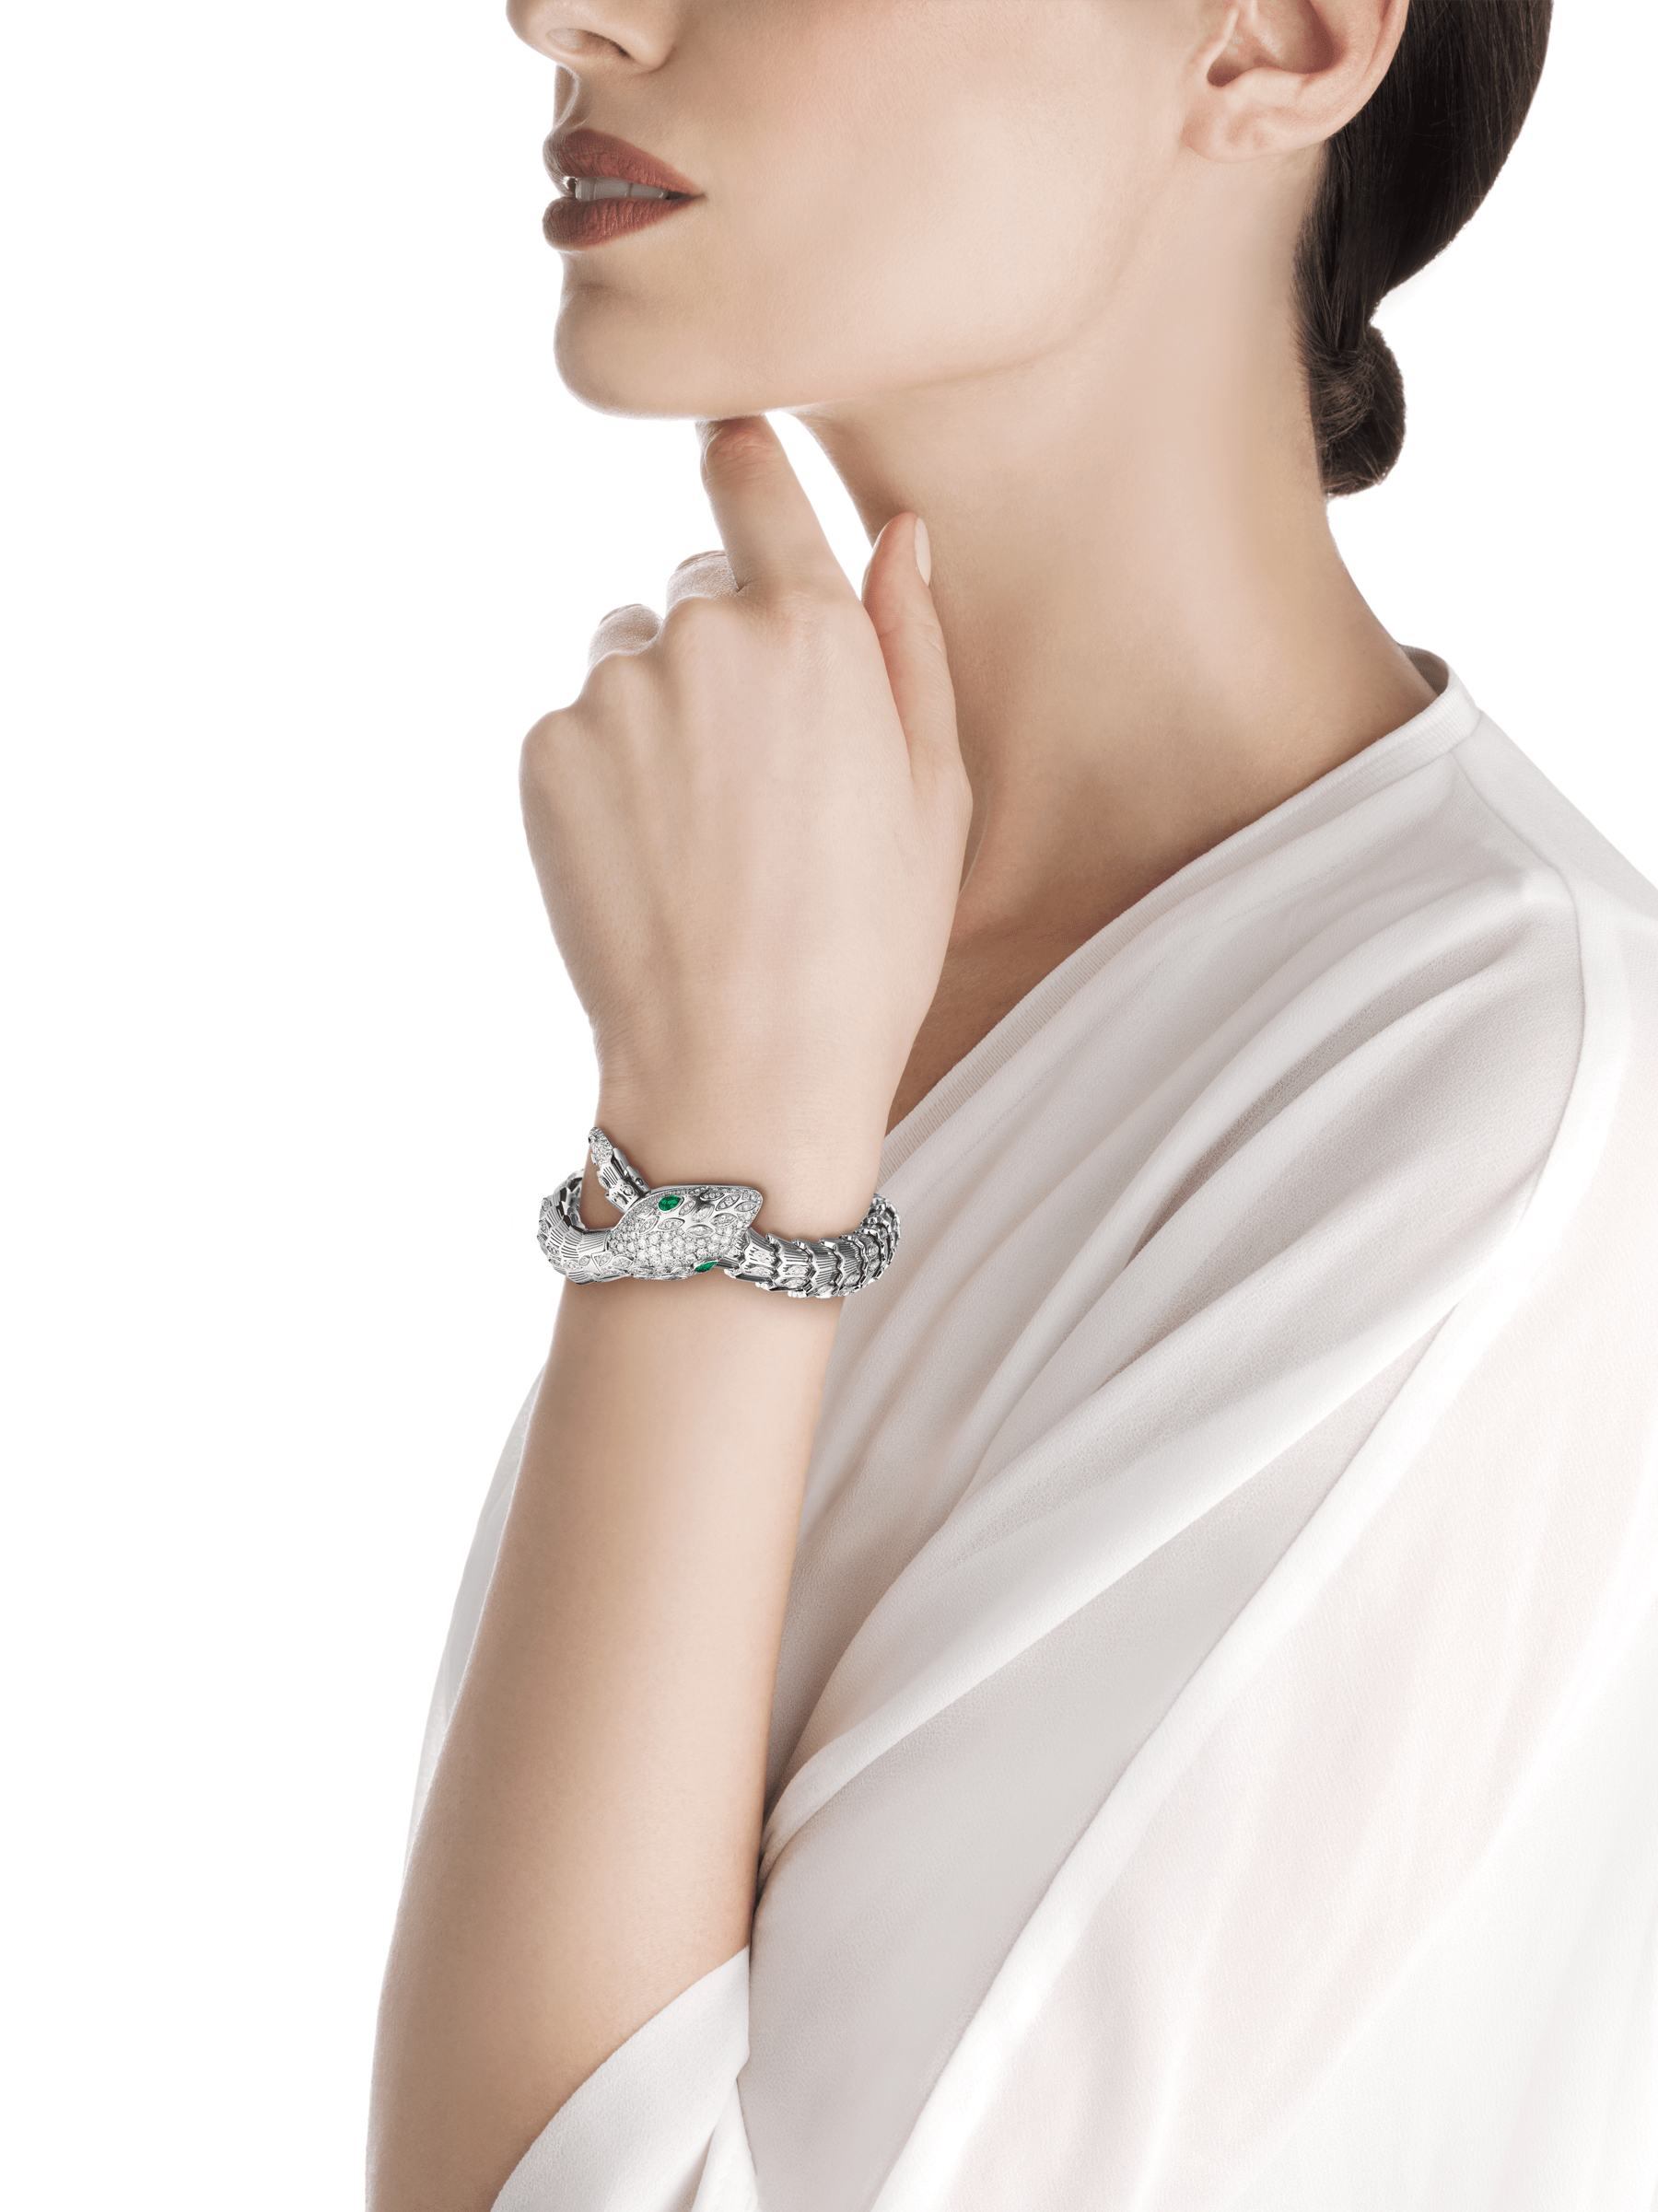 Serpenti Secret Watch with 18 kt white gold case, 18 kt white gold head, dial and single spiral bracelet all set with brilliant cut and marquise cut diamonds, and emerald eyes . 102238 image 3